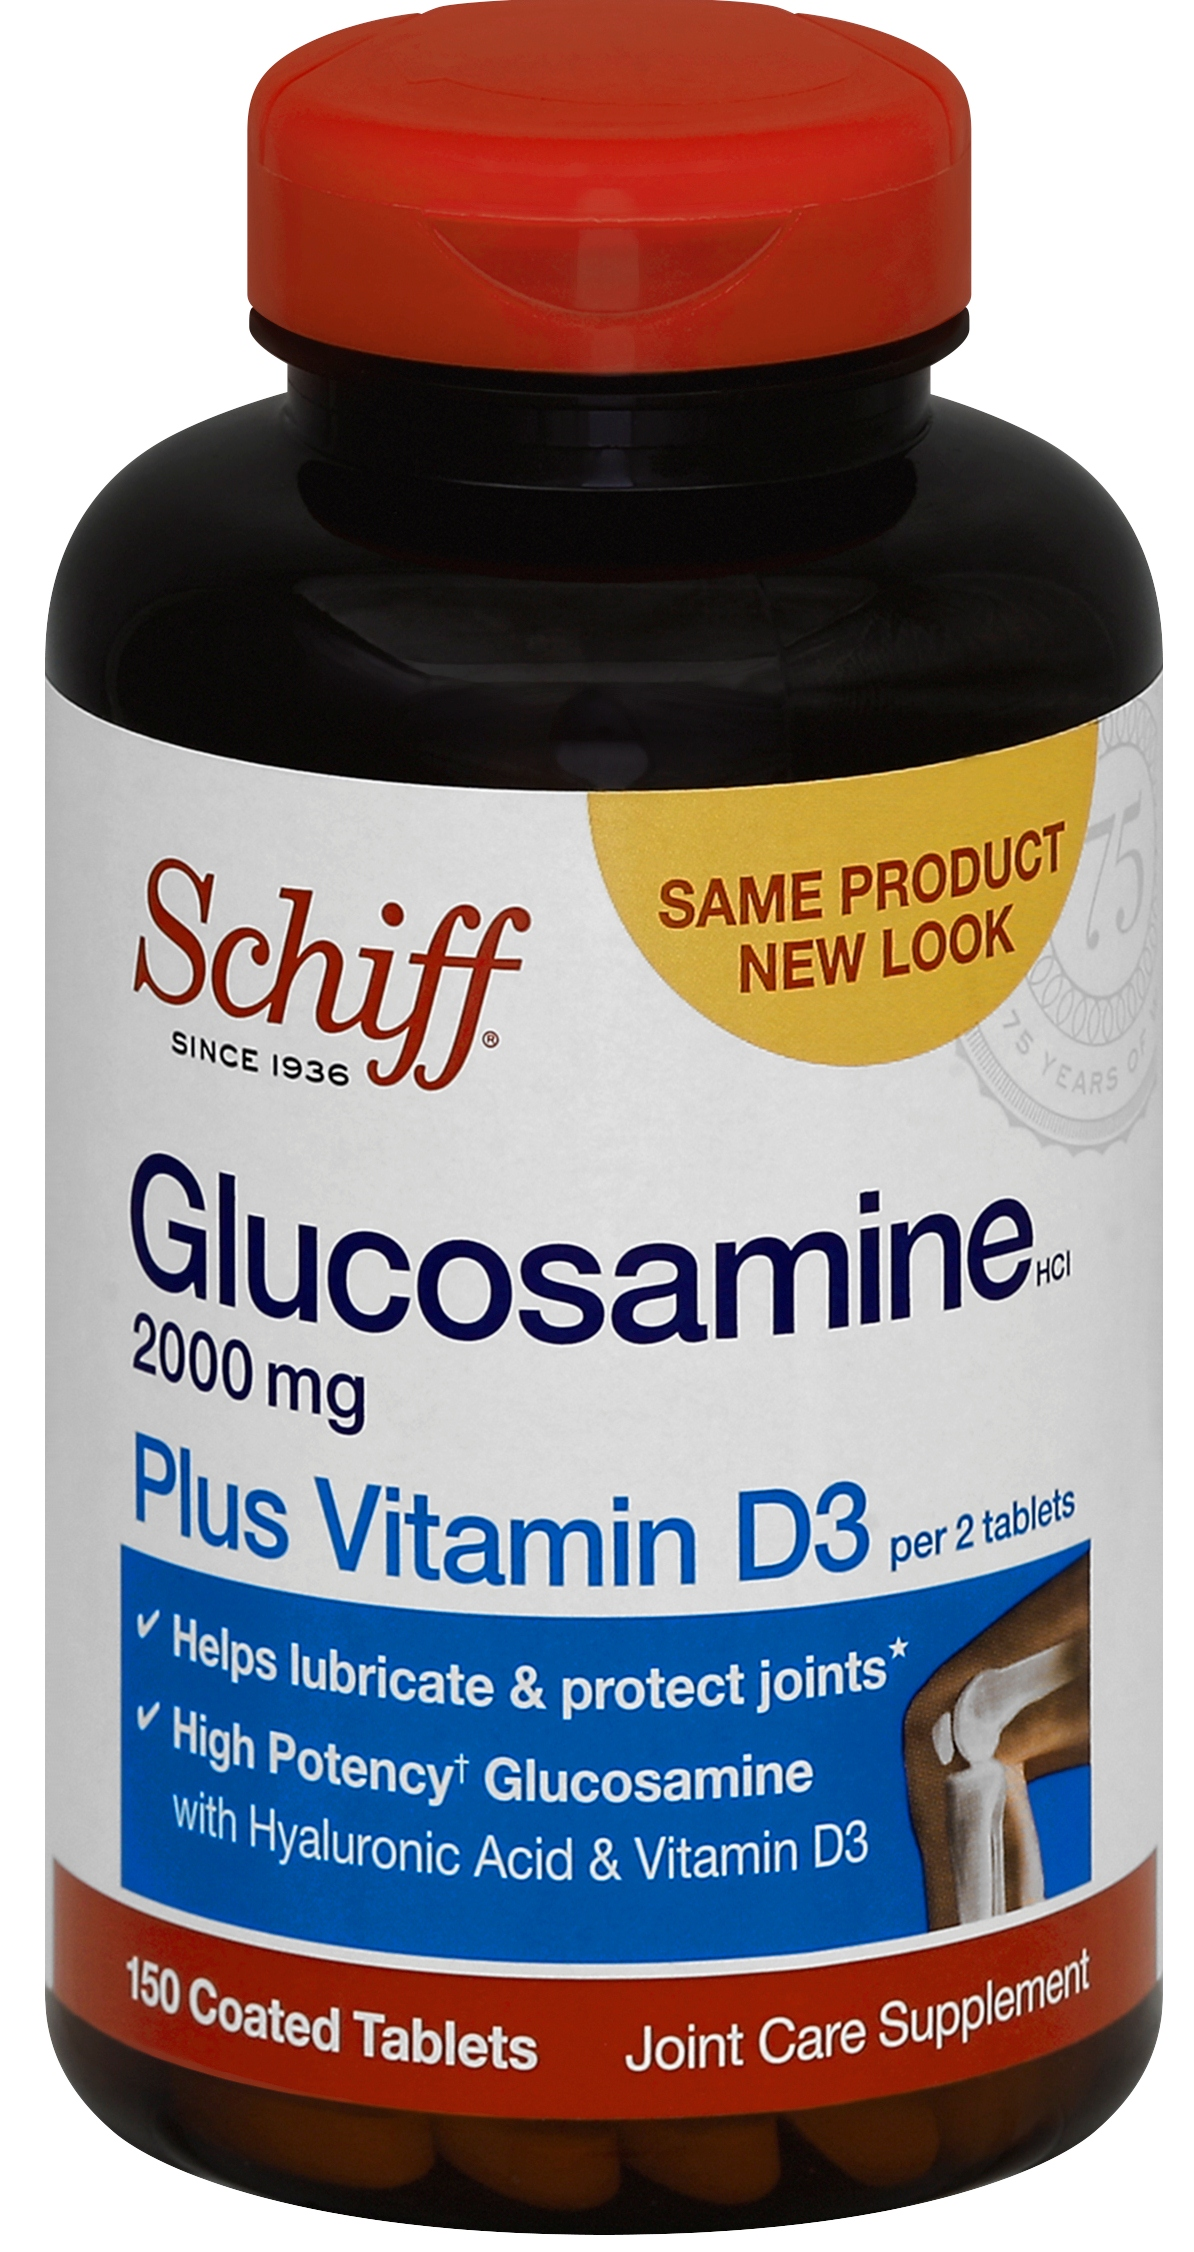 SCHIFF® Glucosamine 2000mg plus Vitamin D3